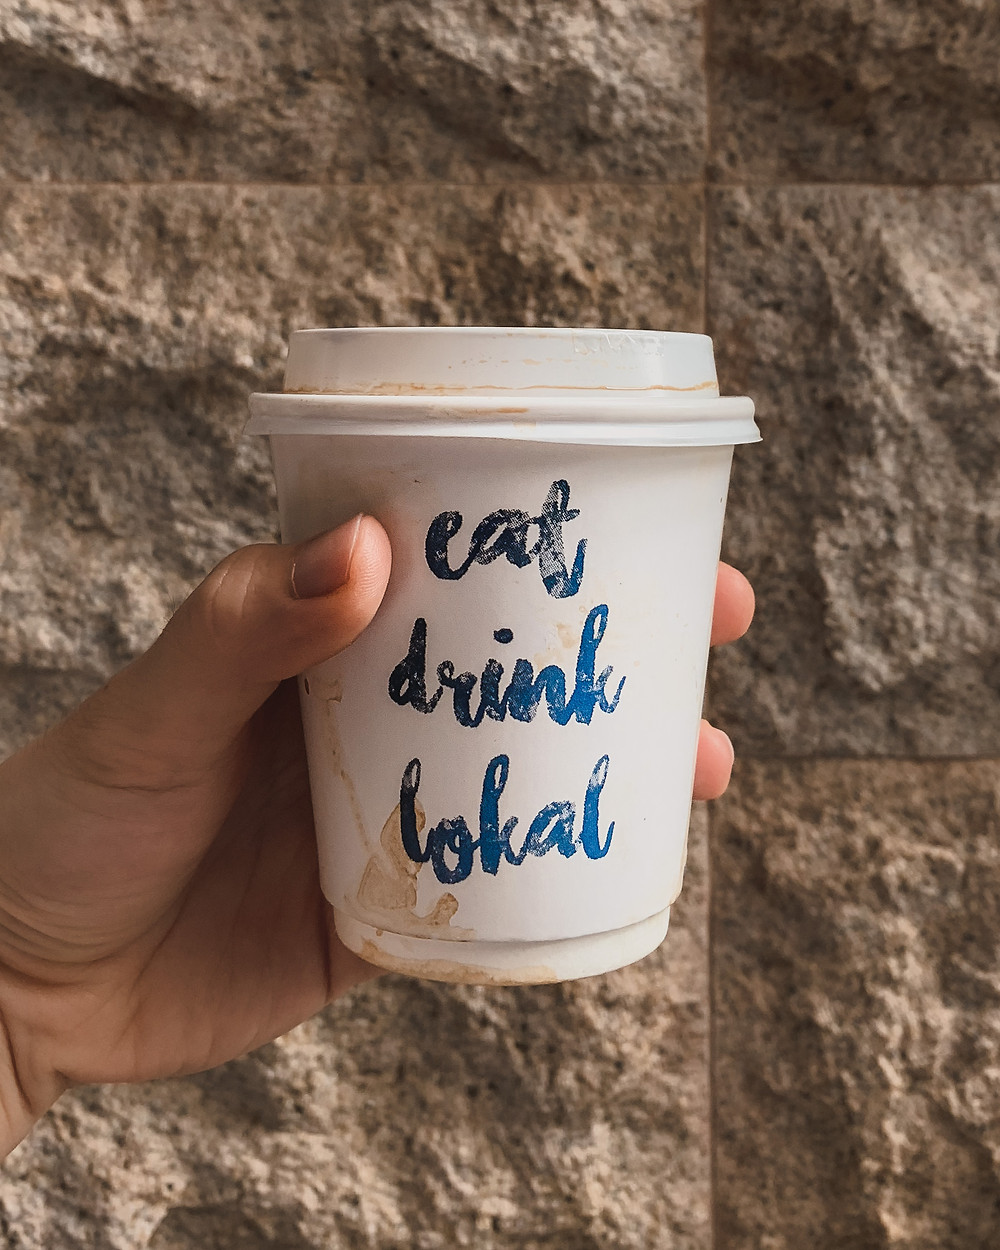 Rollingbear Travels blog/ hand holding paper coffee cup that says 'eat drink Lokal' against stone wall from The Lokal Cafe Singapore